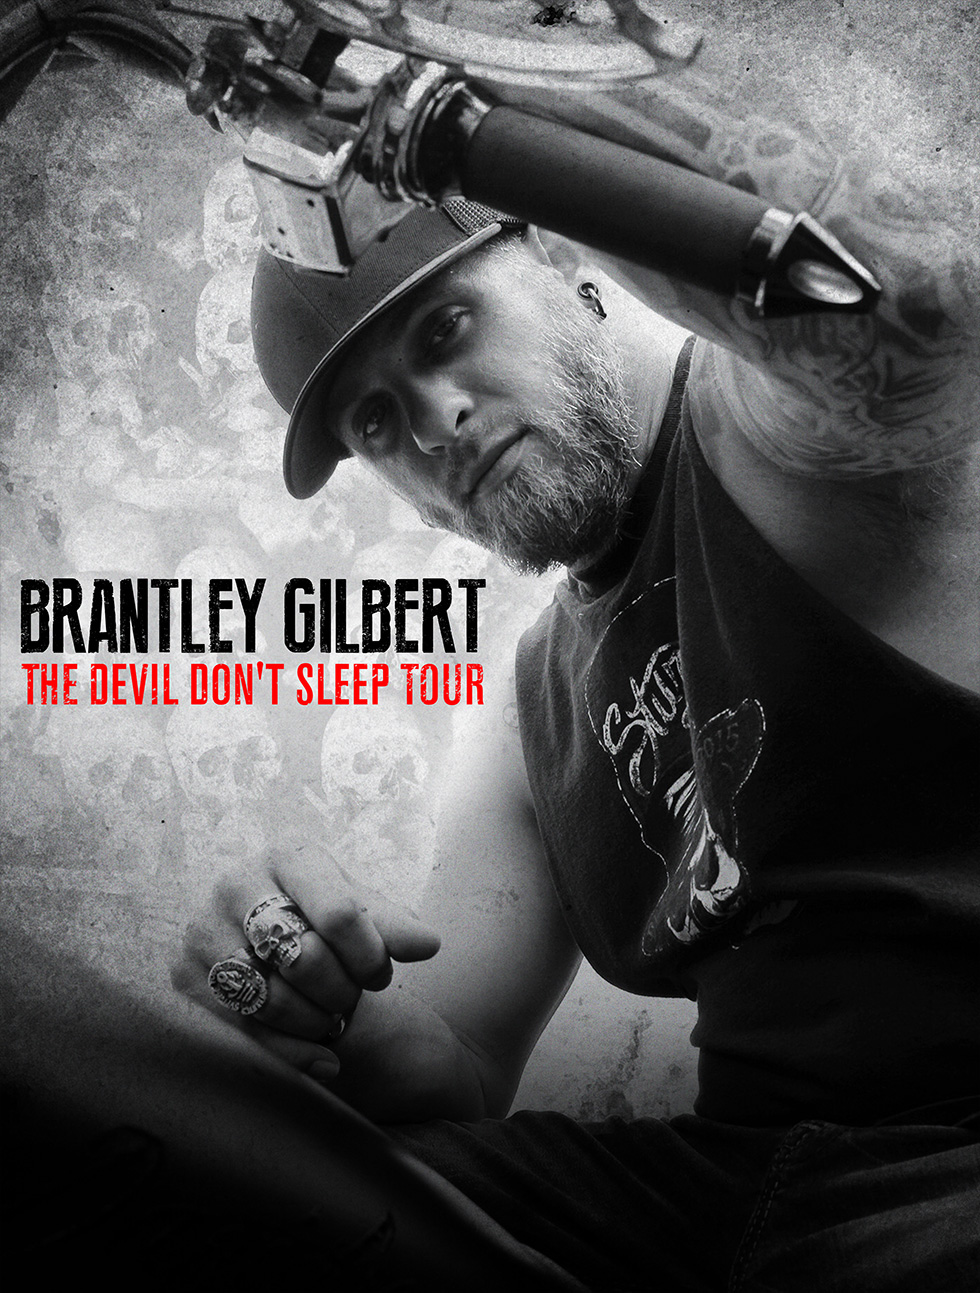 Brantley Gilbert The Devil Don't Sleep Tour